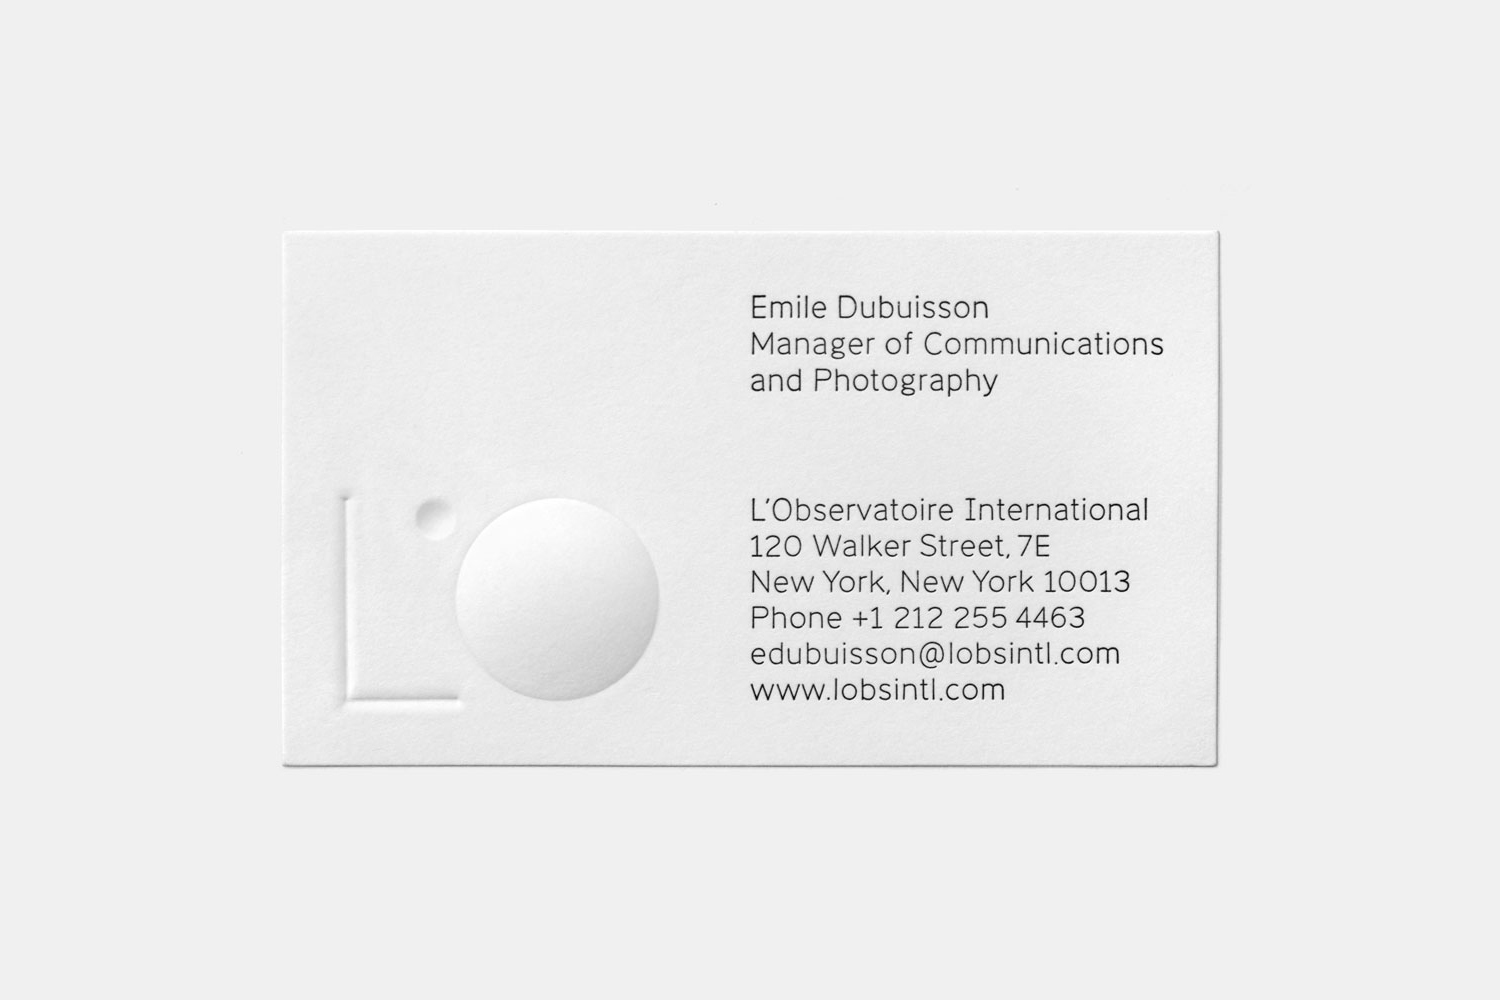 Blind embossed business card for lighting specialists L'Observatoire International by Triboro, United States